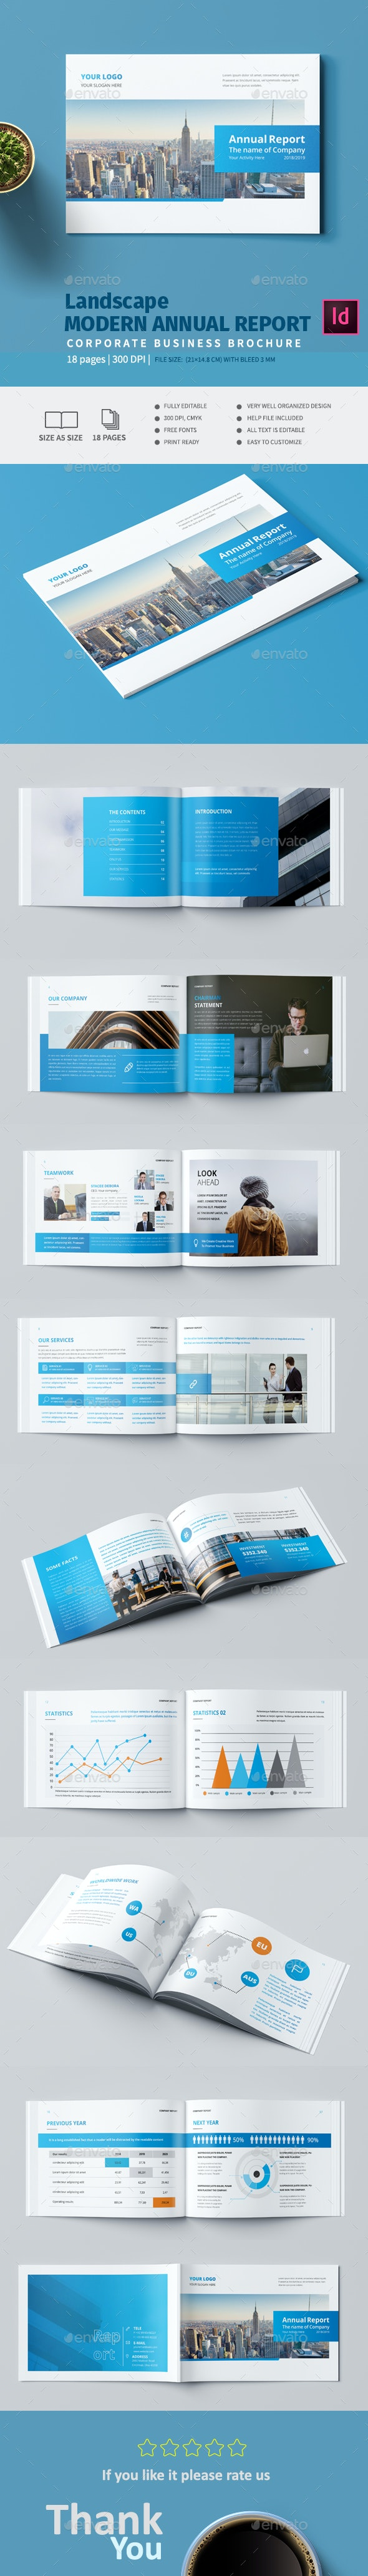 Landscape Modern Annual Report - Corporate Brochures